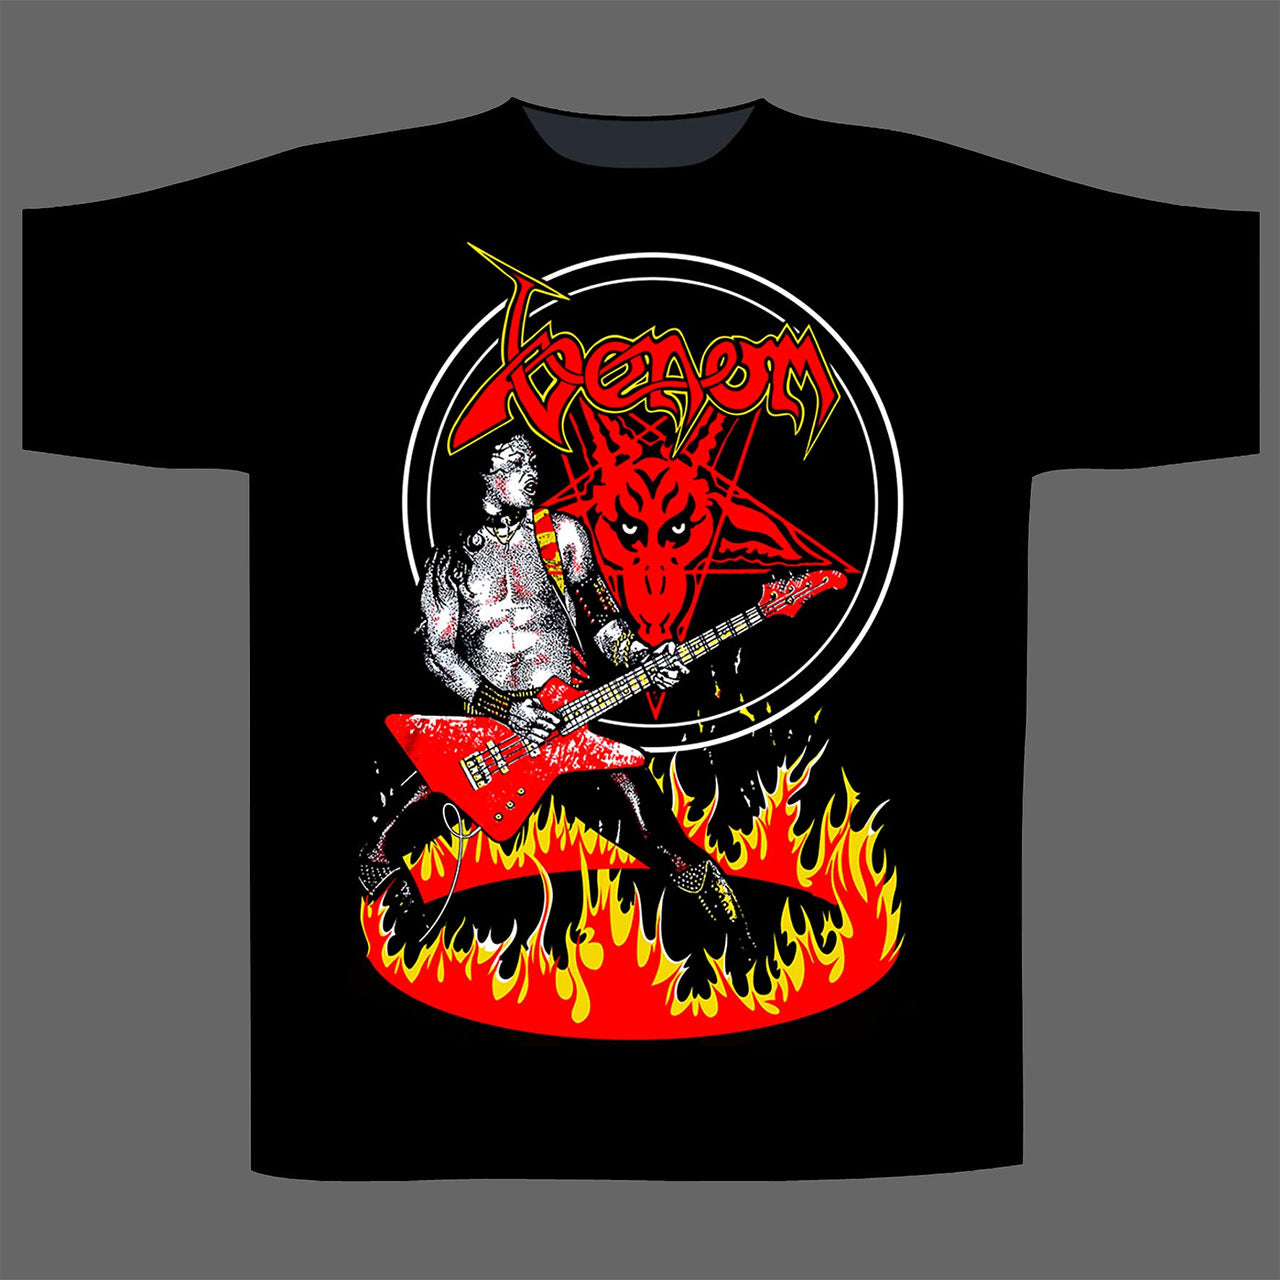 Venom - Cronos in Flames (T-Shirt)